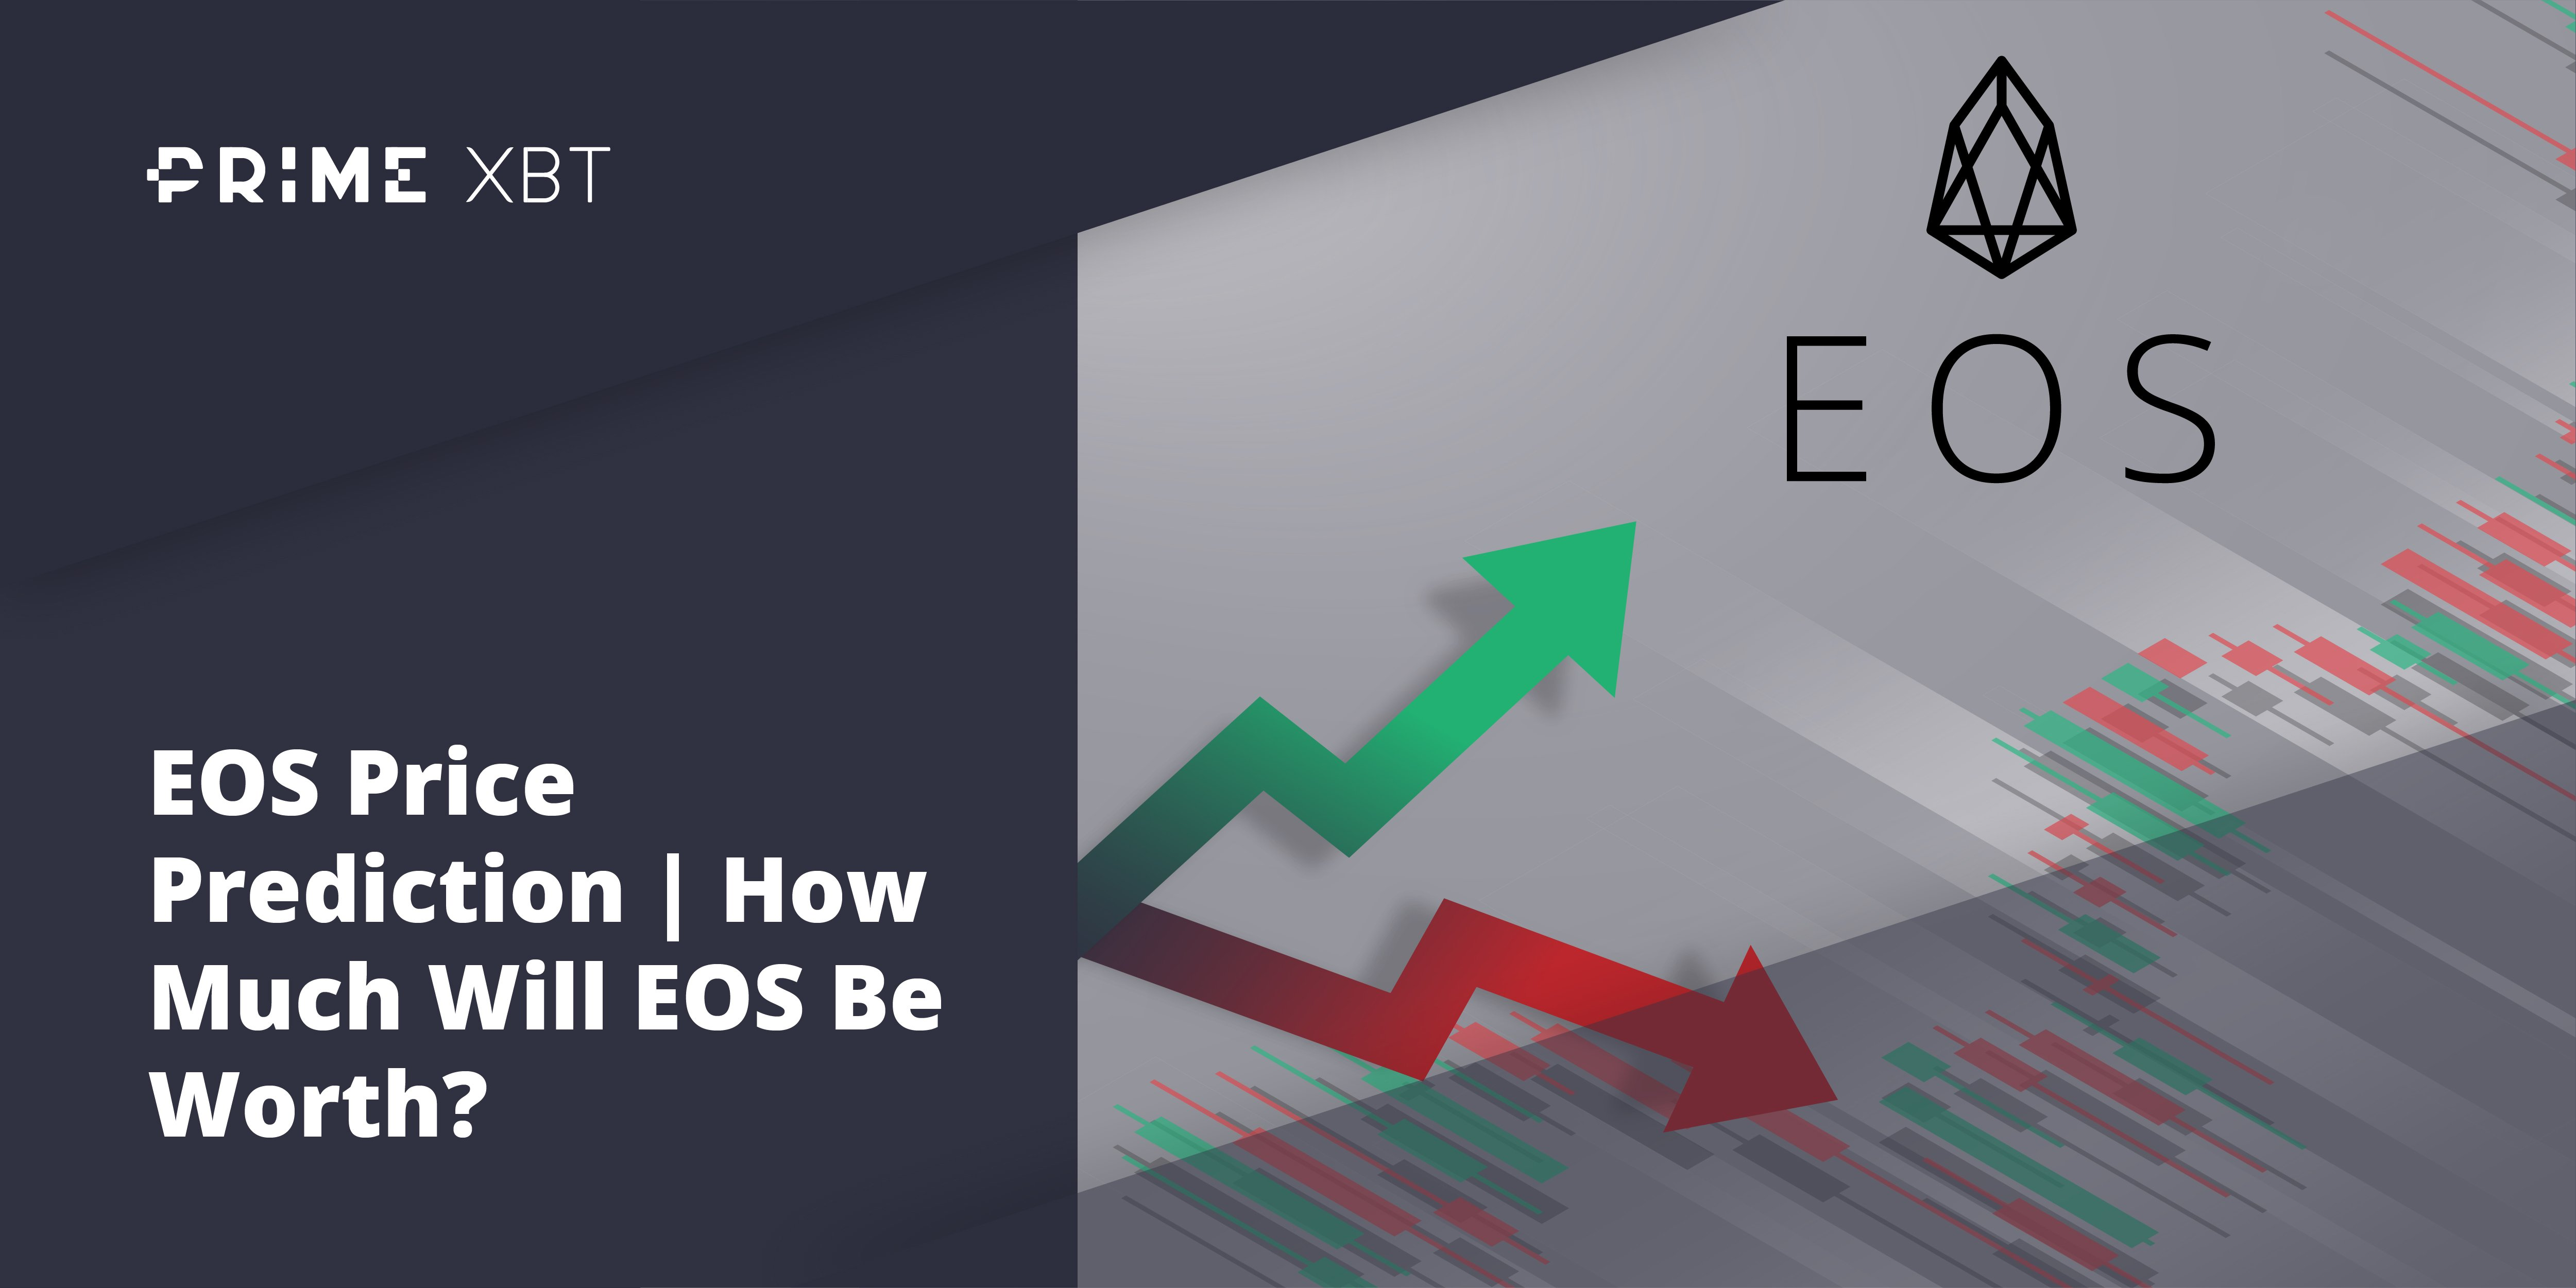 EOS Price Prediction | How Much Will EOS Be Worth? - eos